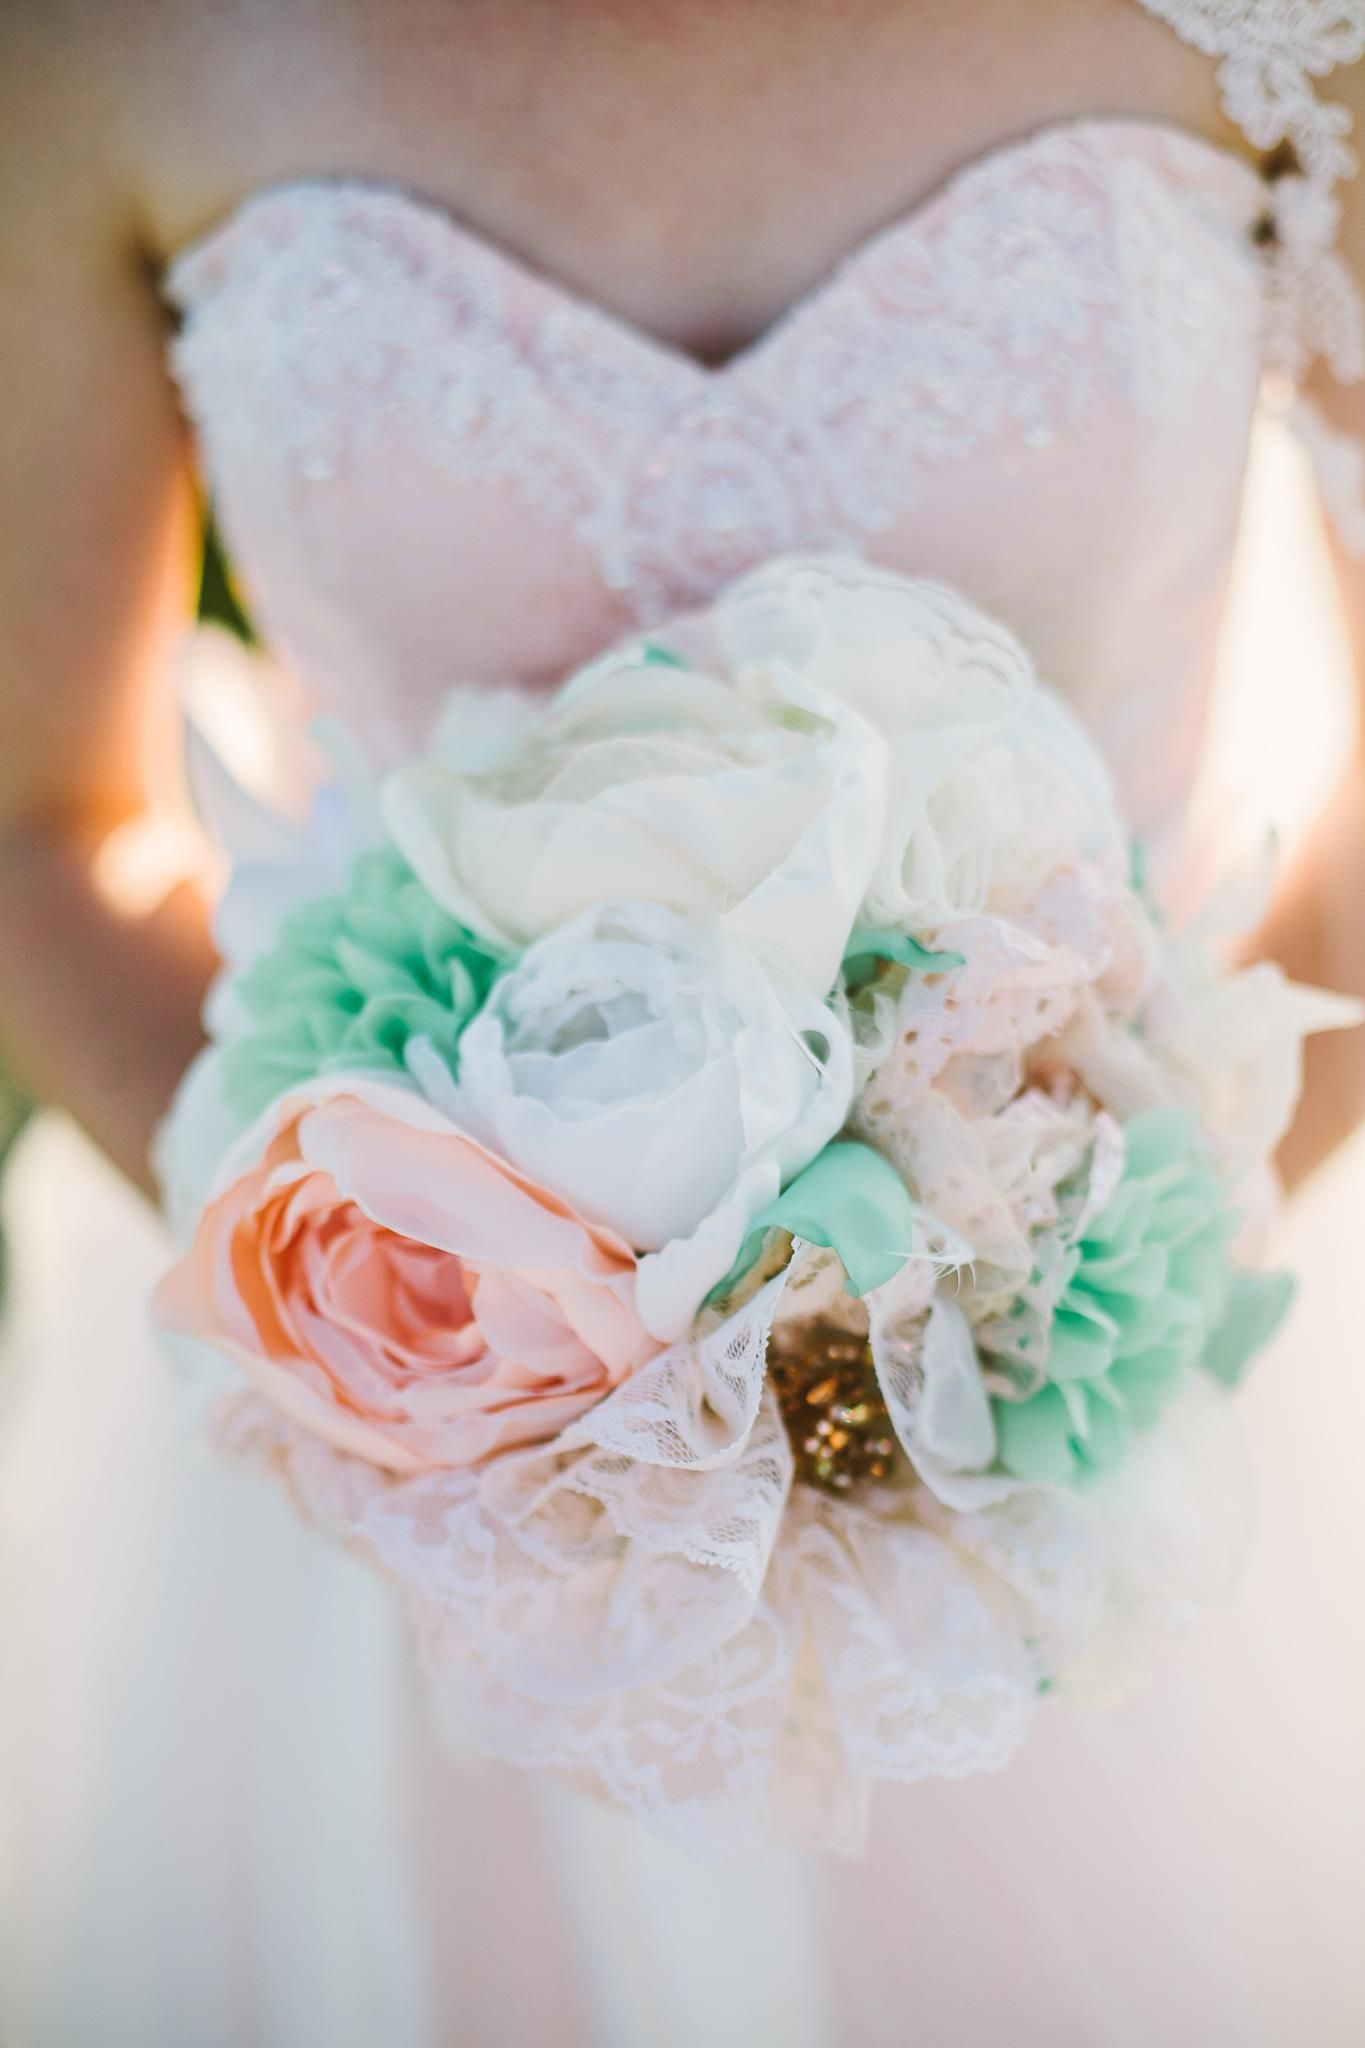 How to make this absolutely gorgeous realistic looking diy bridal how to make this absolutely gorgeous realistic looking diy bridal bouquet made out of handmade fabric flowers brooches keys and pins izmirmasajfo